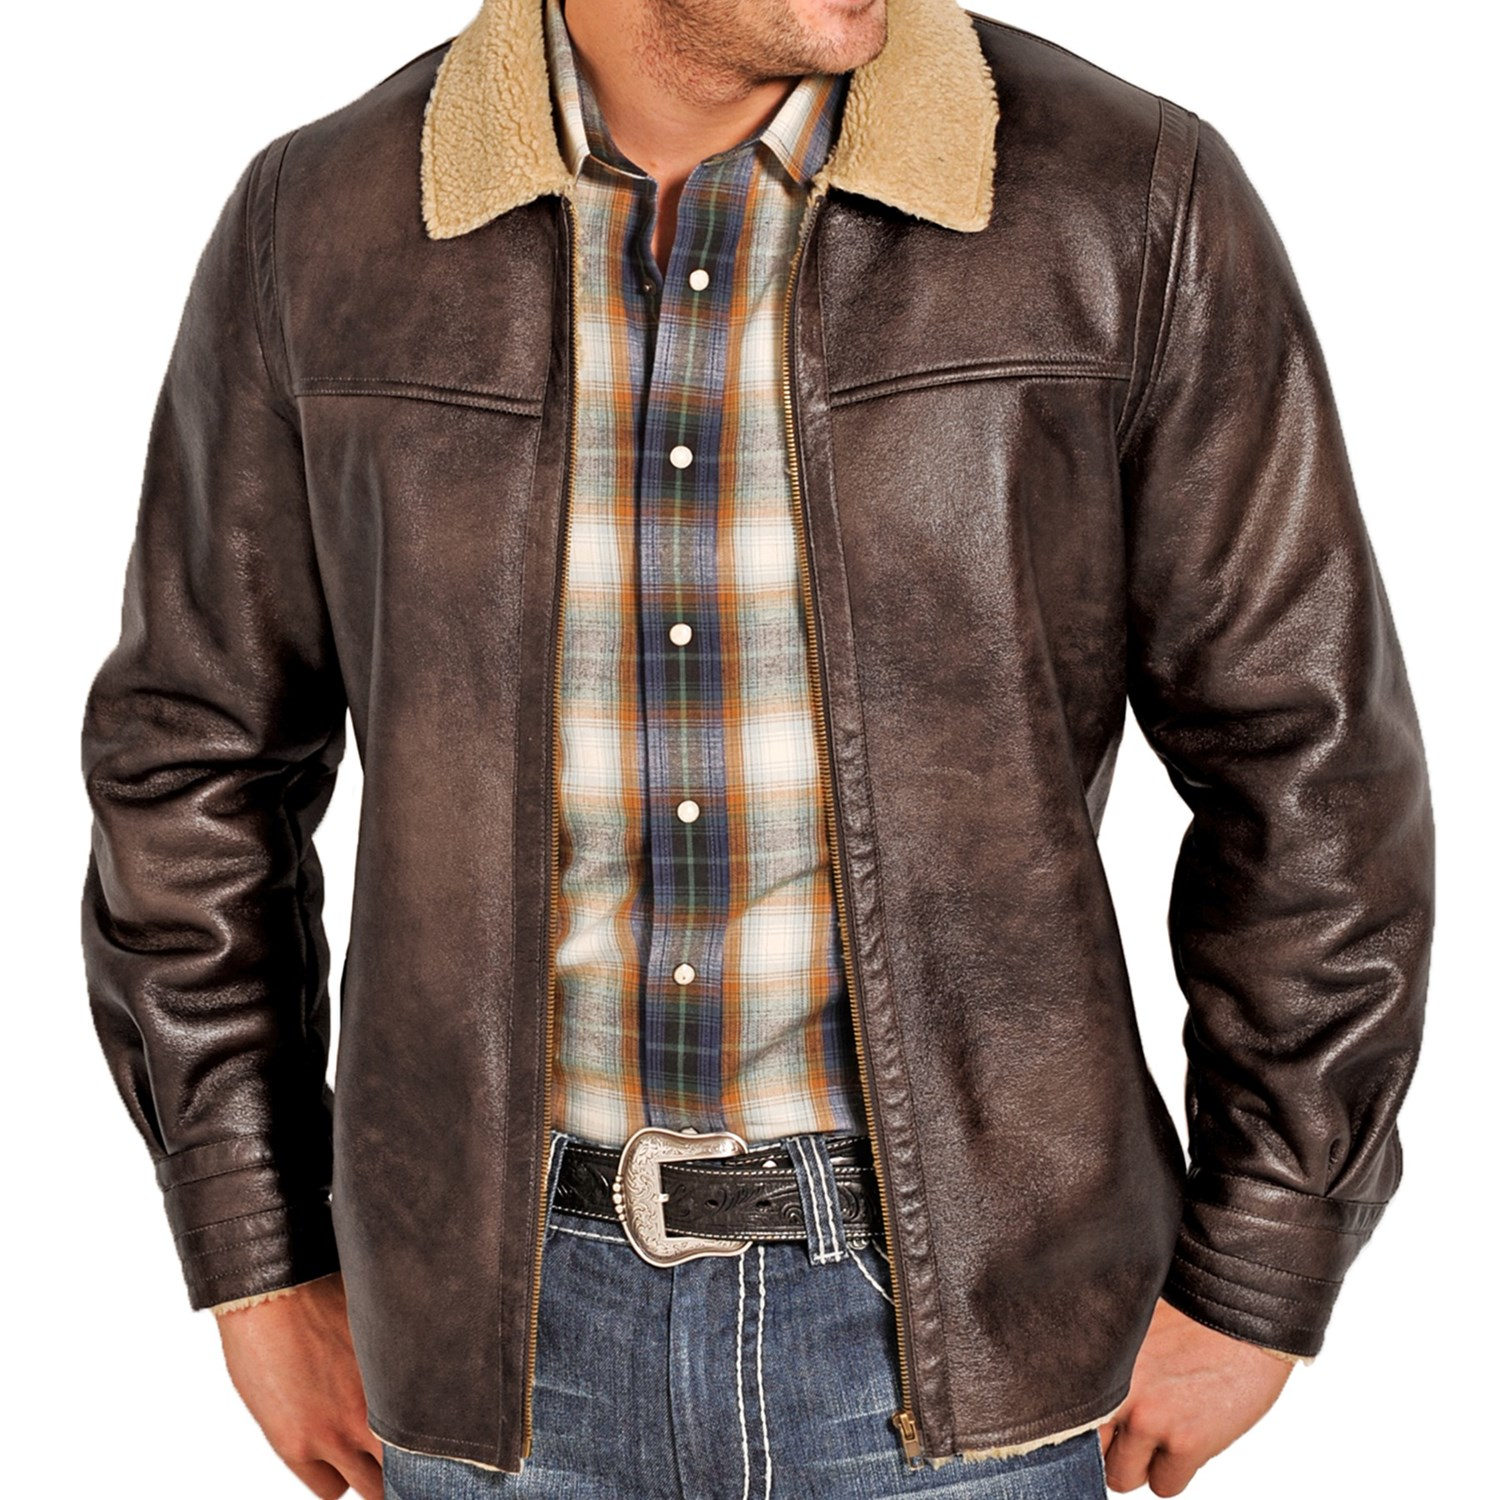 Mens leather jackets western – Modern fashion jacket photo blog